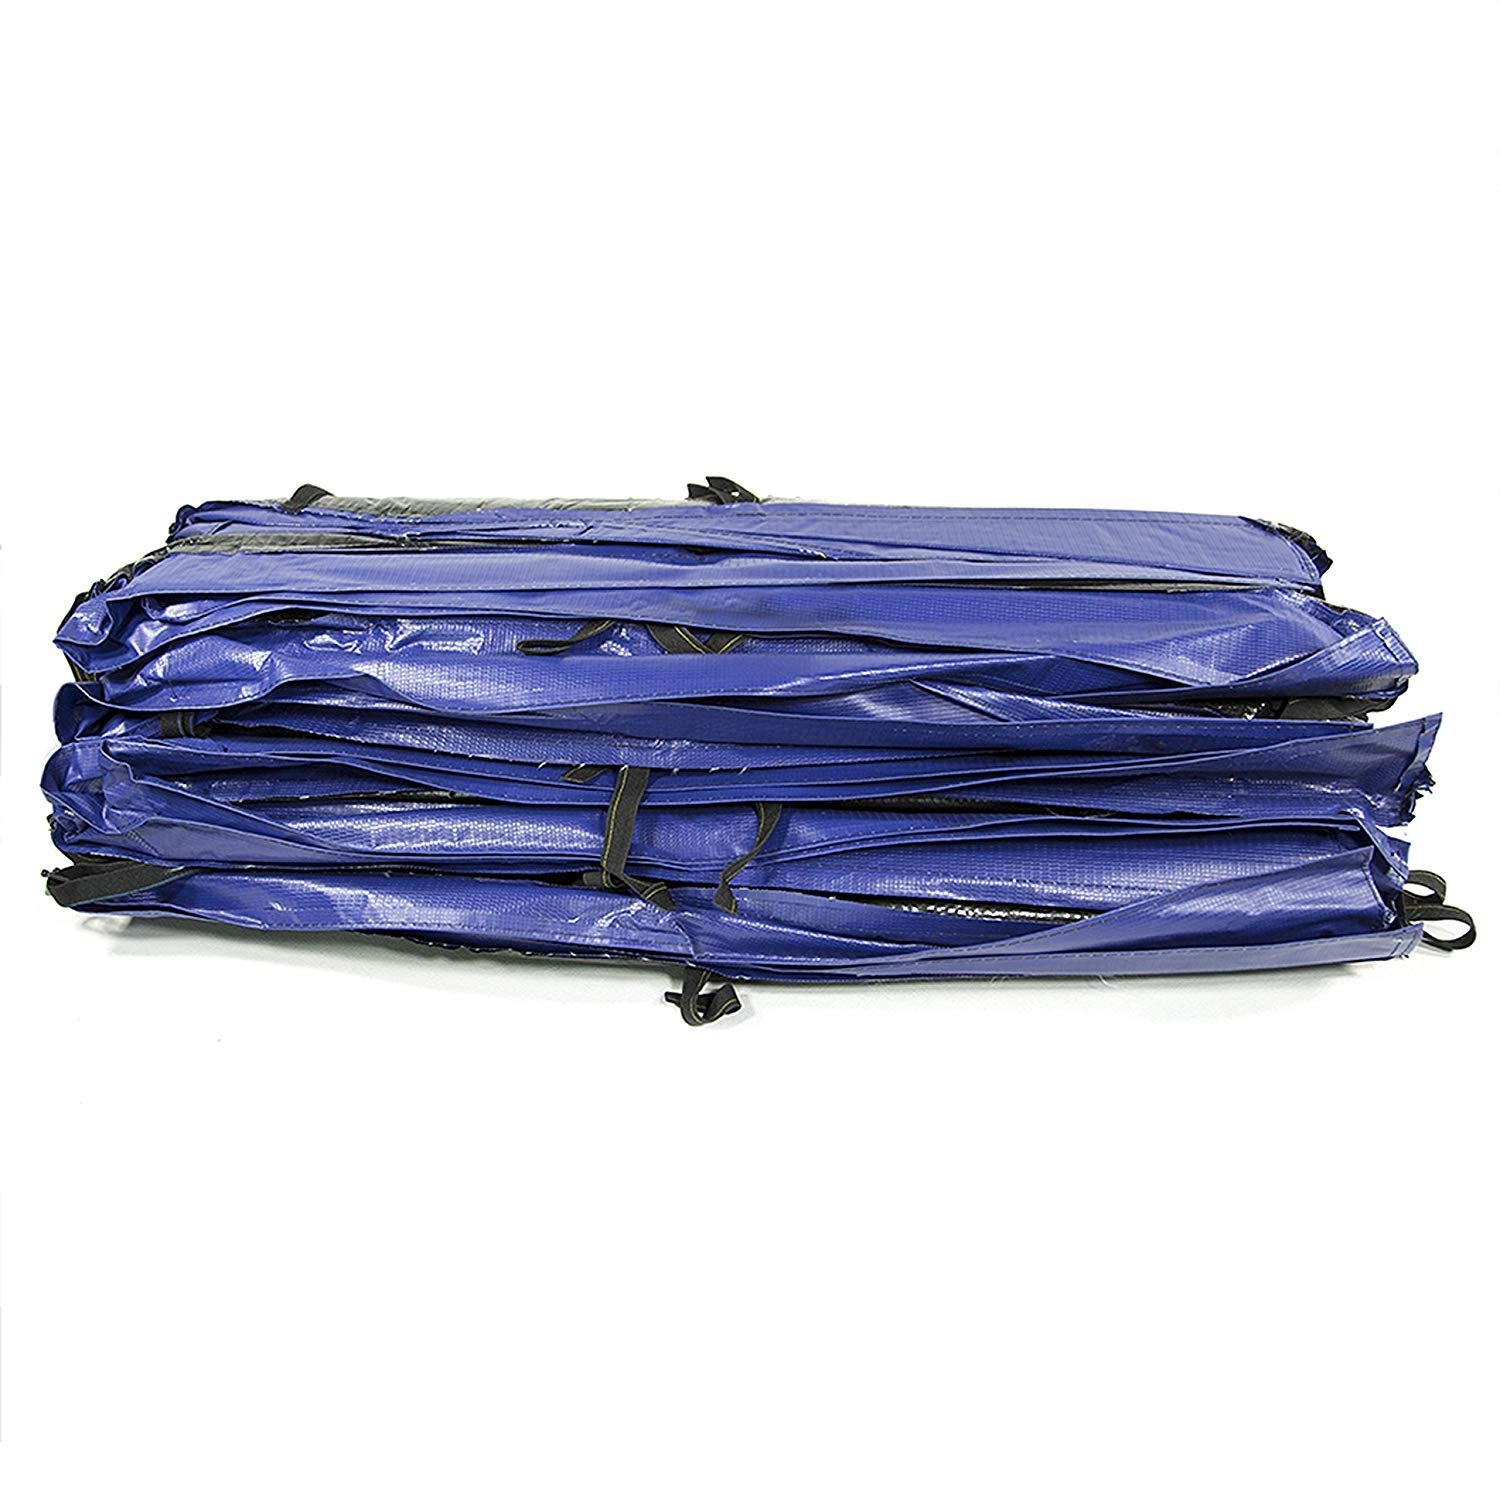 Skywalkers Trampolines Safety Pad 9x15 ft Replacement Parts Accesories. 9'x15' Rectangle Spring Blue Vinyl-Coated for Trampoline. Ultra High UV Protection. Compatibility STRC915 by Skywalkers Trampolines (Image #3)